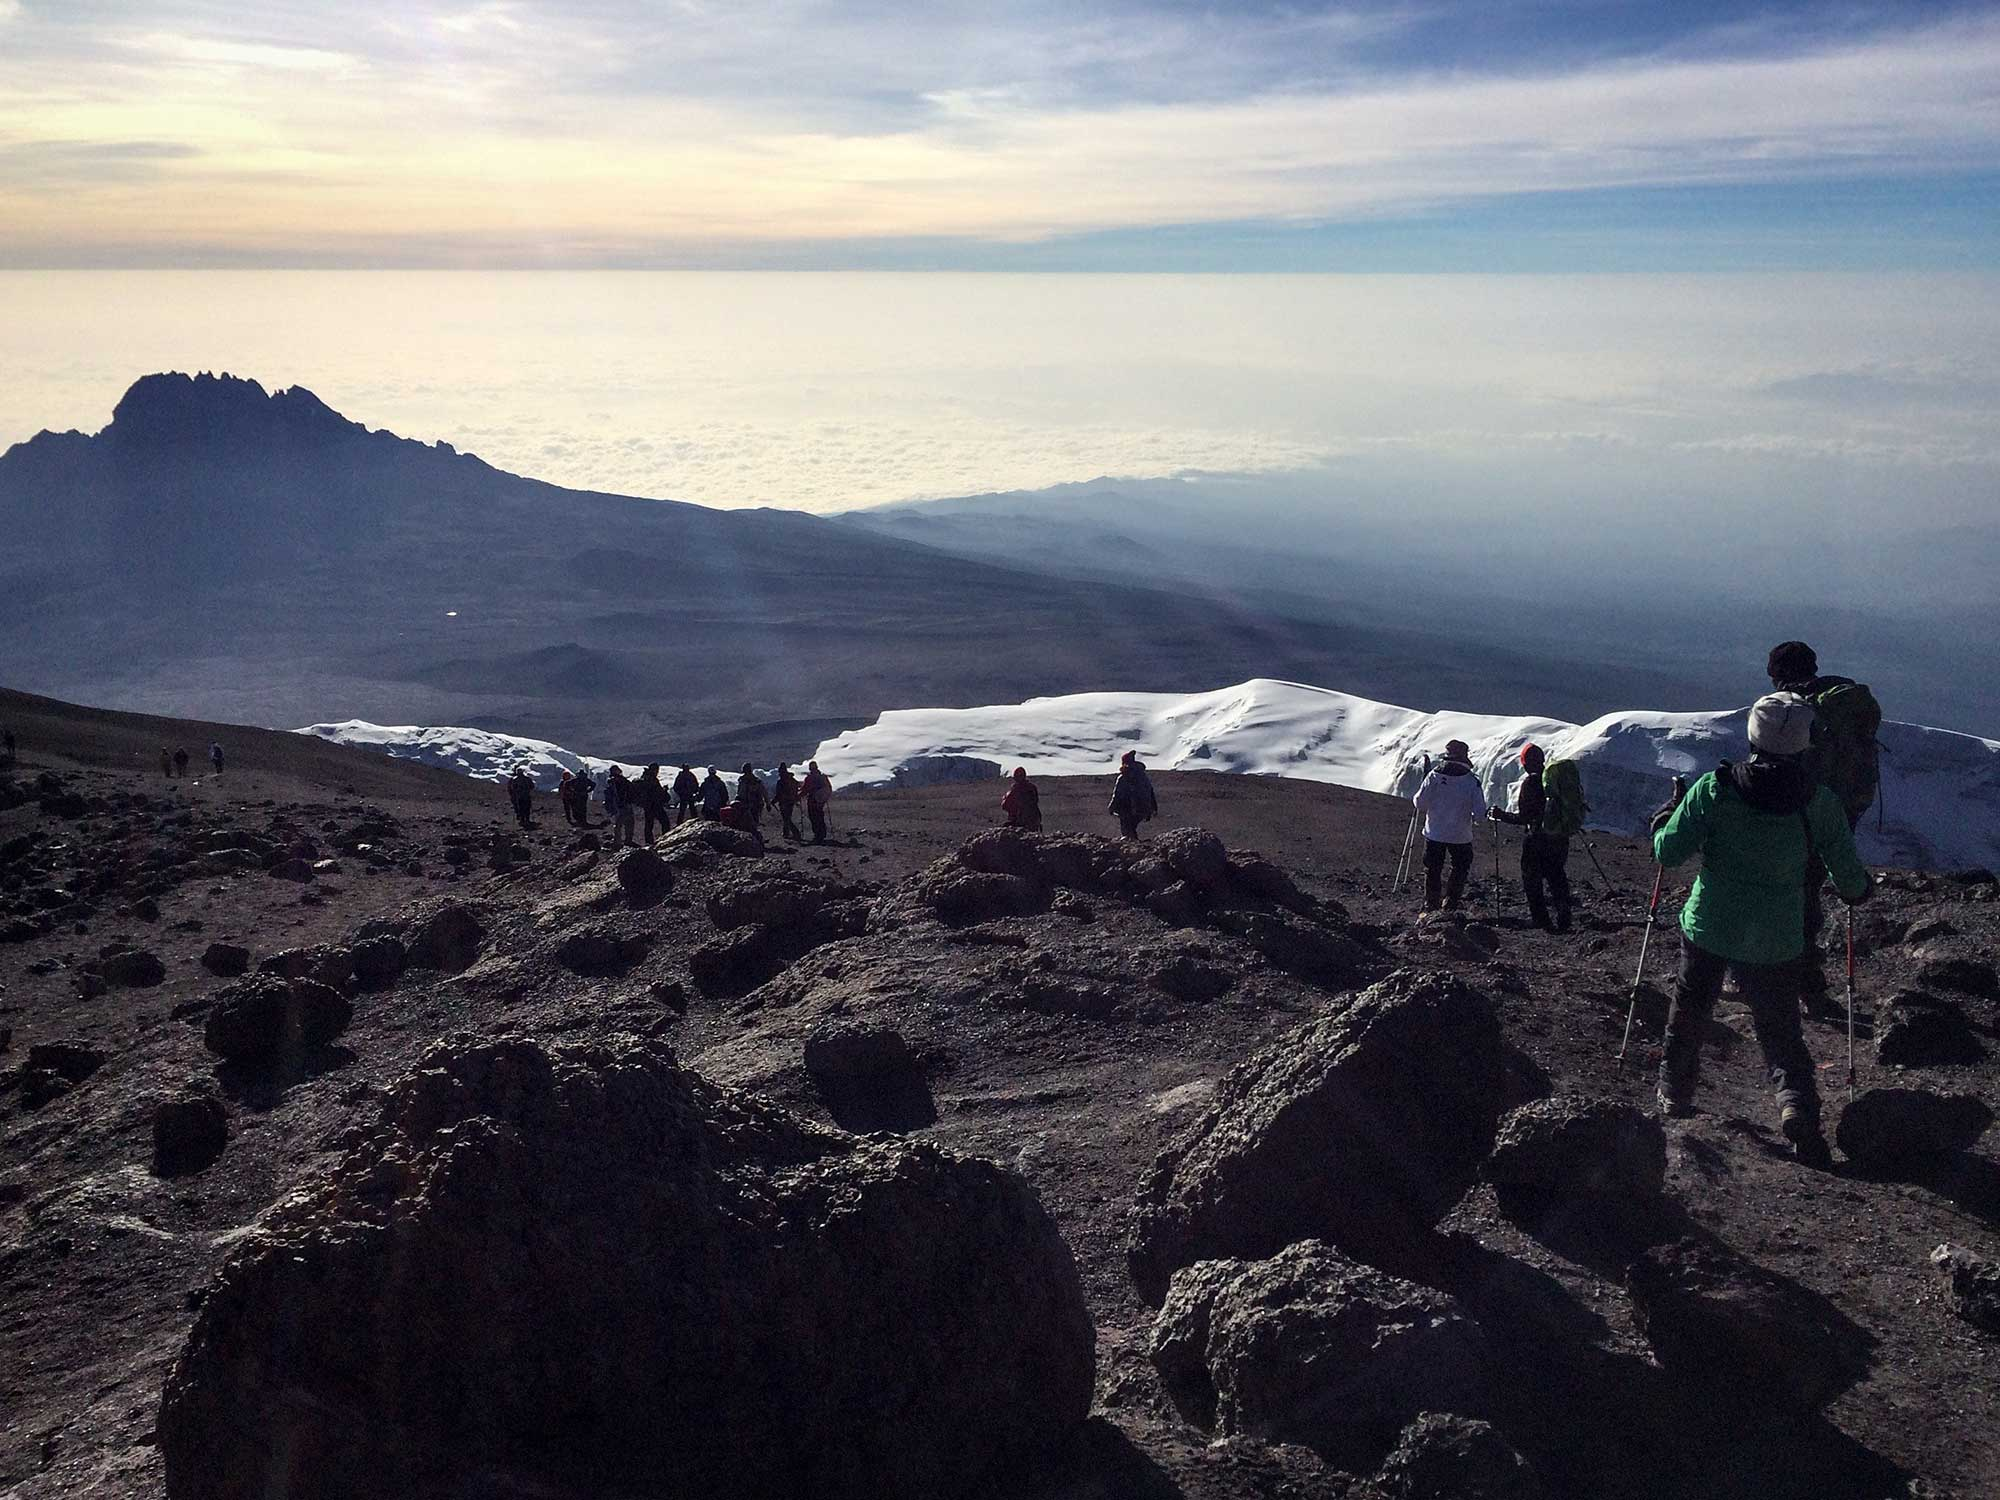 Descending Kilimanjaro to views of glacier, Mawenzi, and clouds as far as the eye can see.